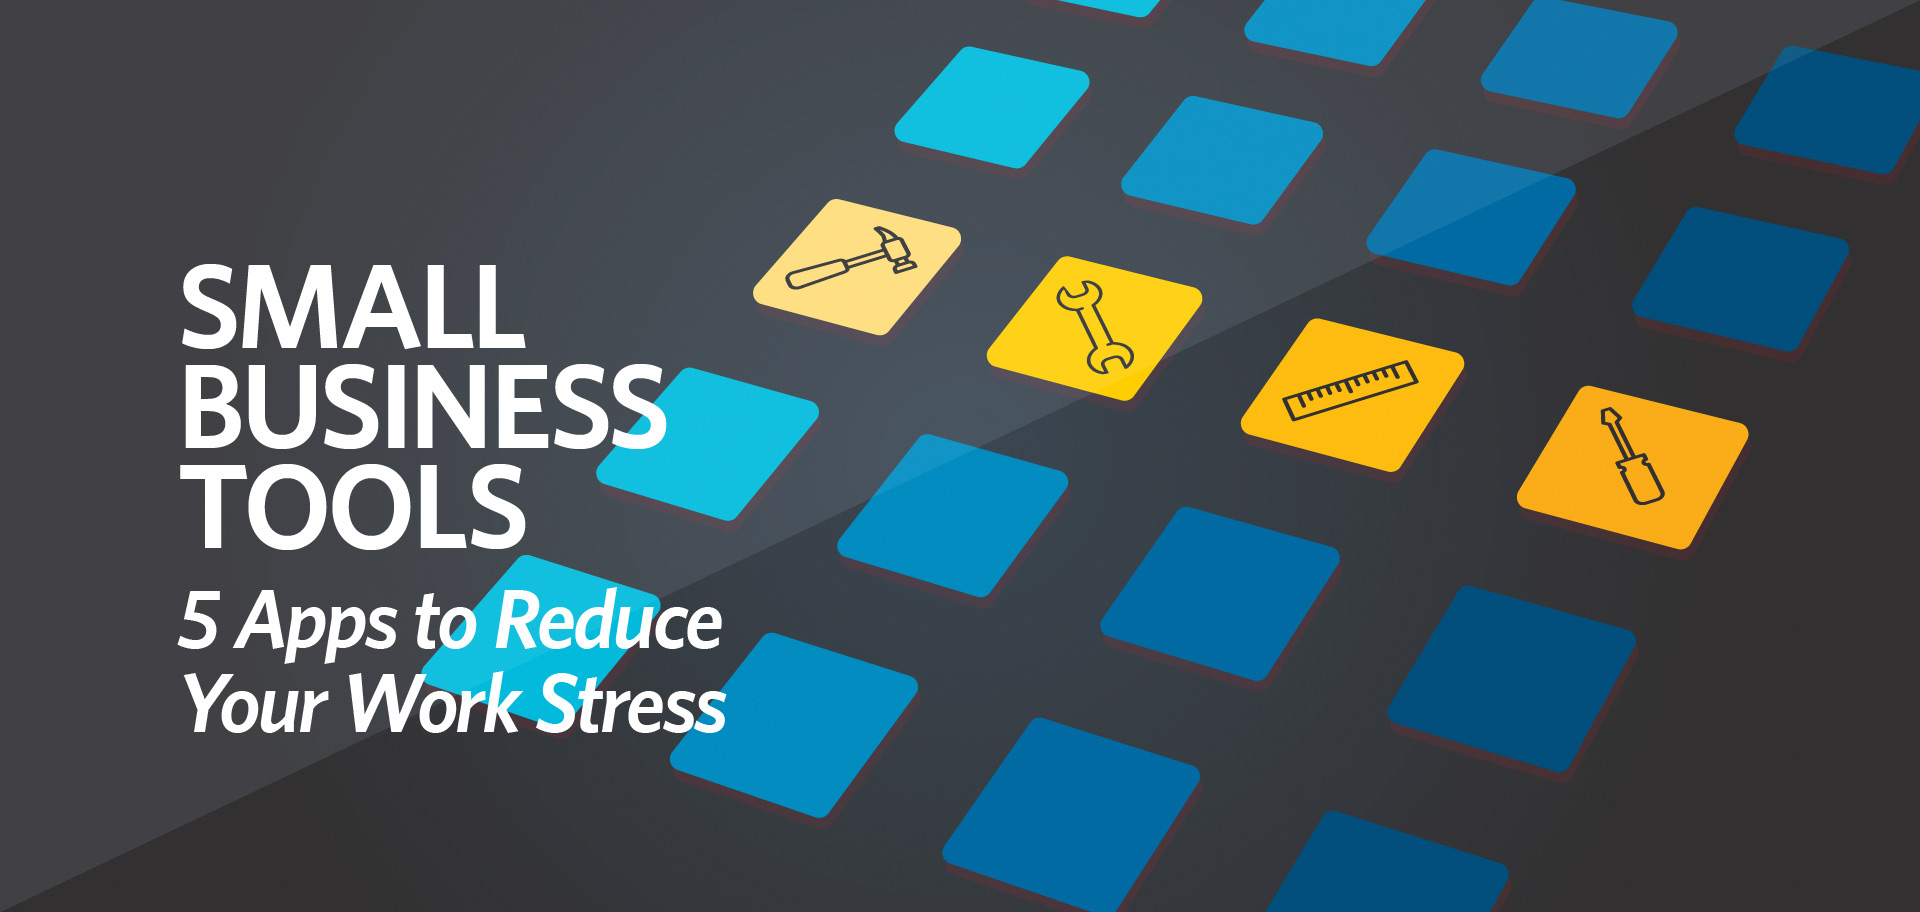 Small Business Tools: 5 Apps to Reduce Your Work Stress by Kettle Fire Creative small business tools Small Business Tools: 5 Apps to Reduce Your Work Stress small biz tools fi